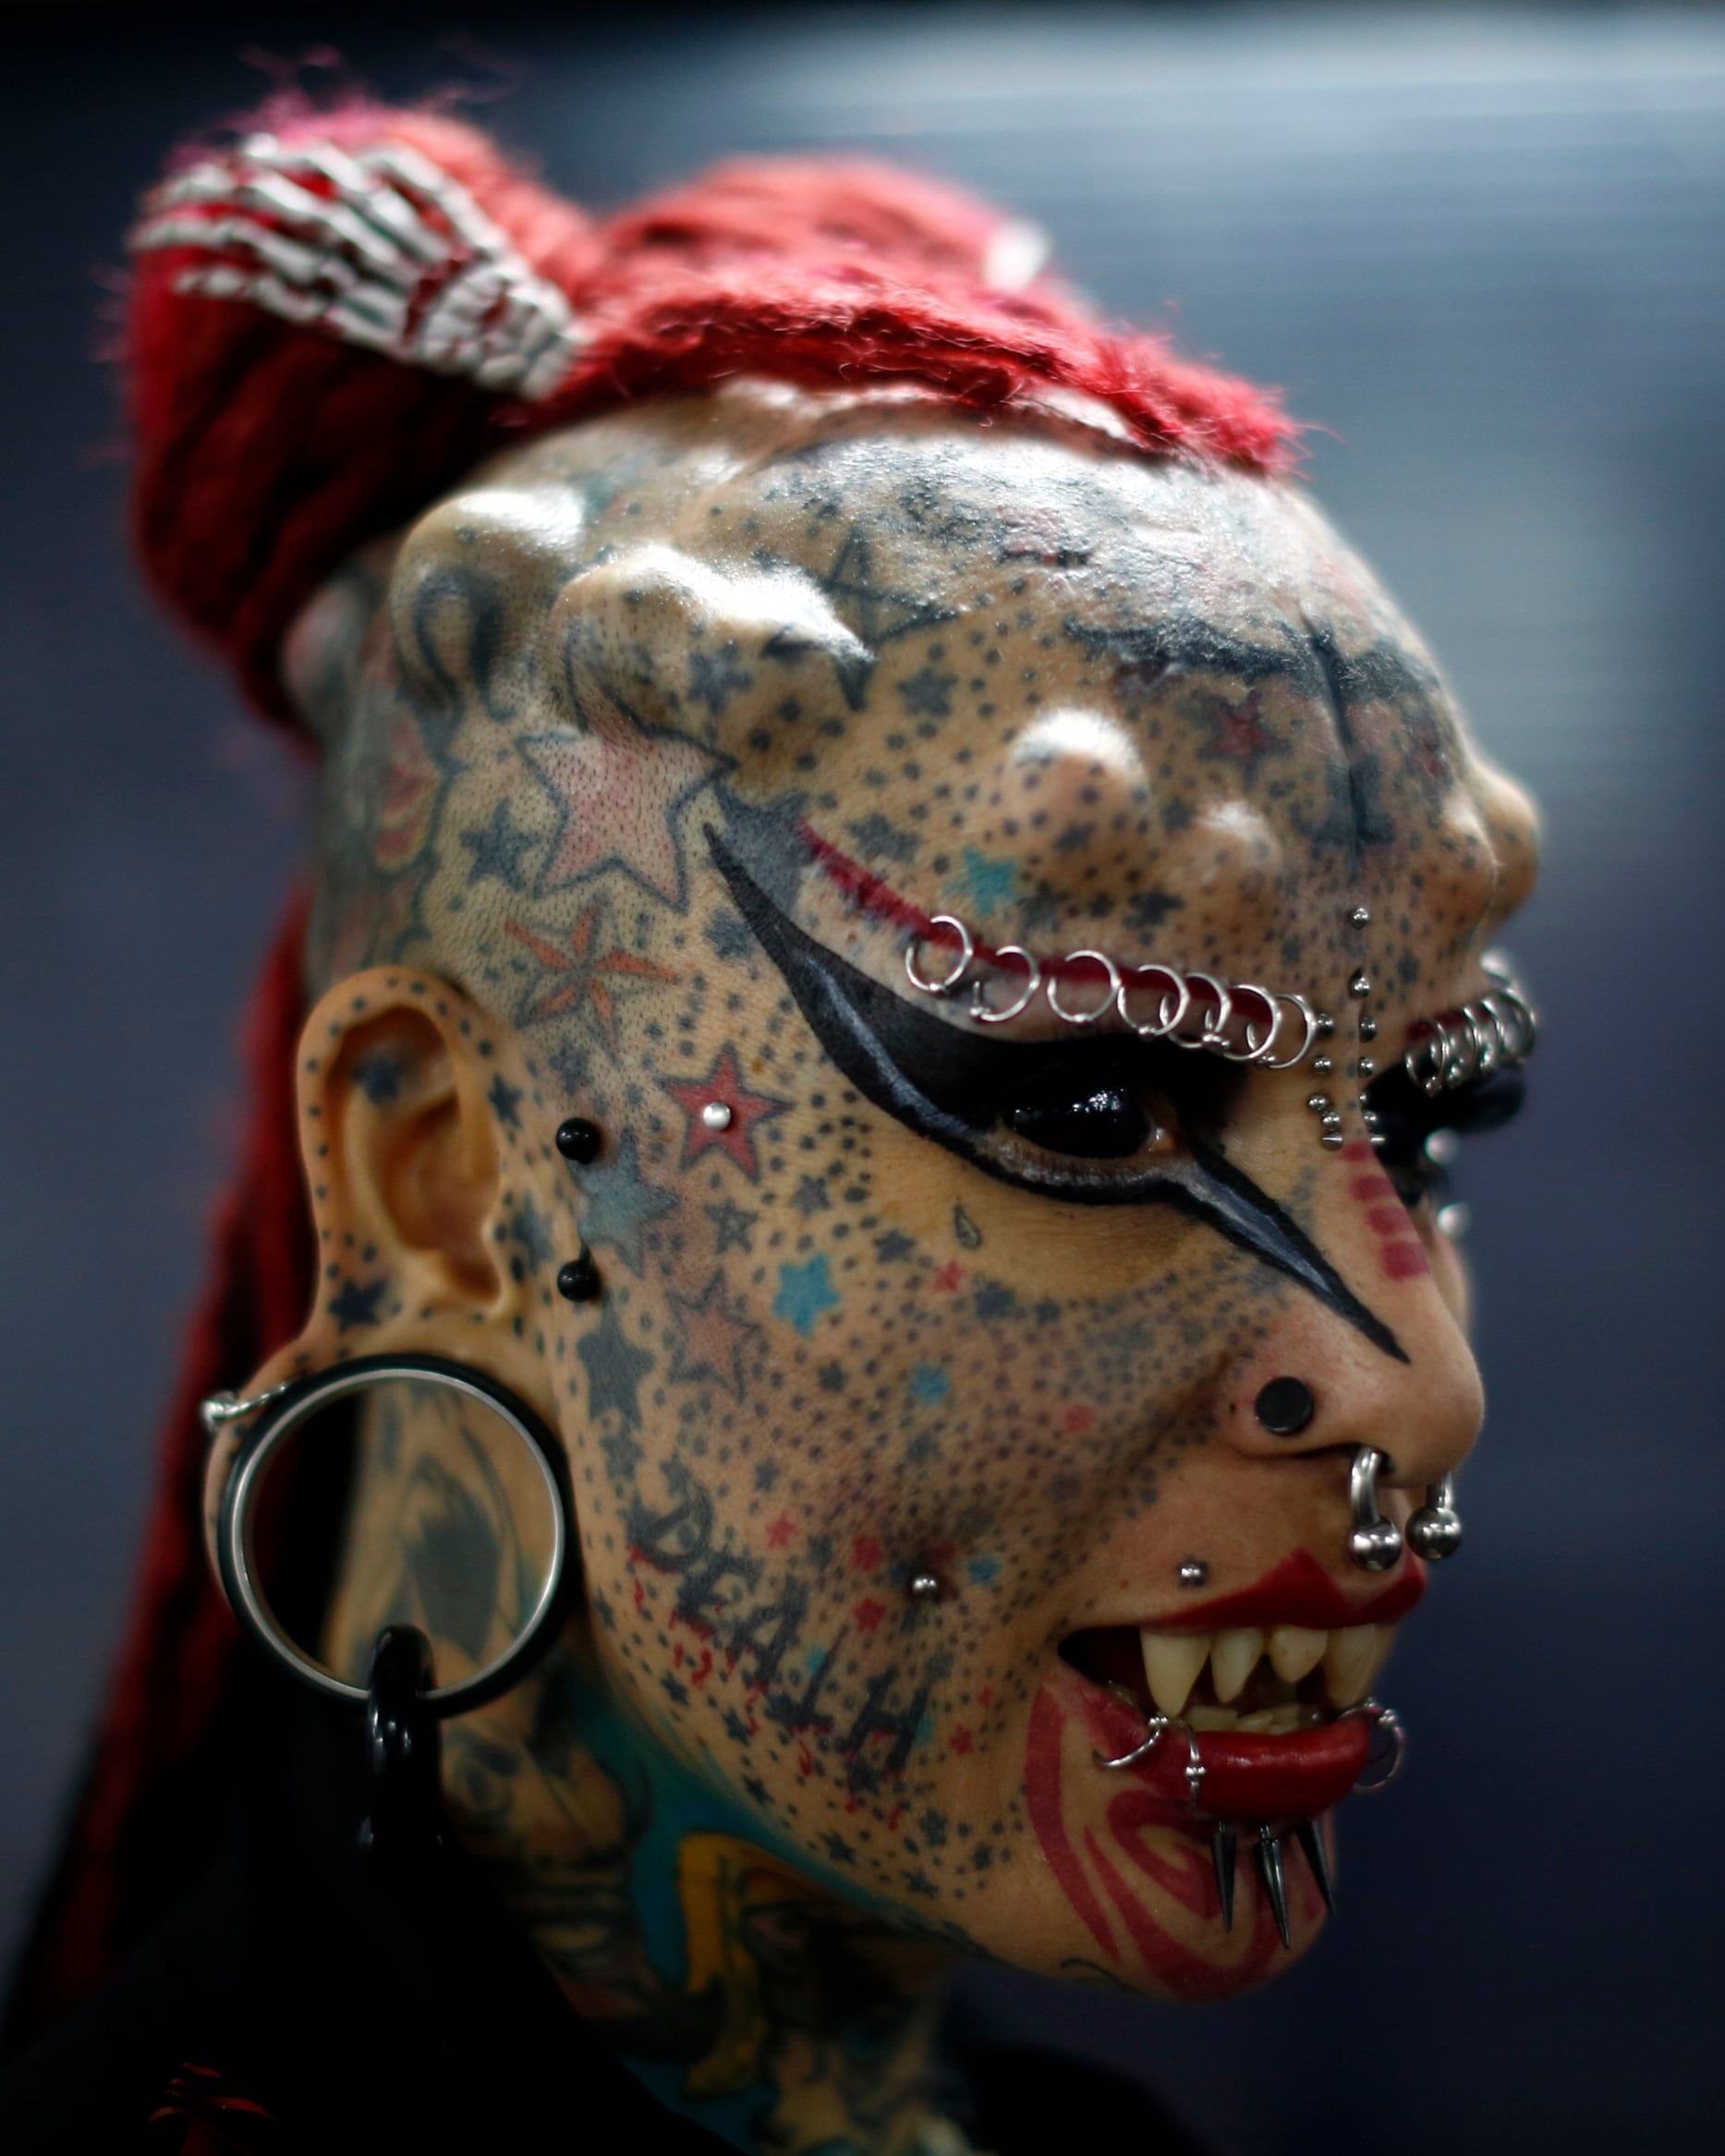 Forked tongues and tattooed eyeballs should body